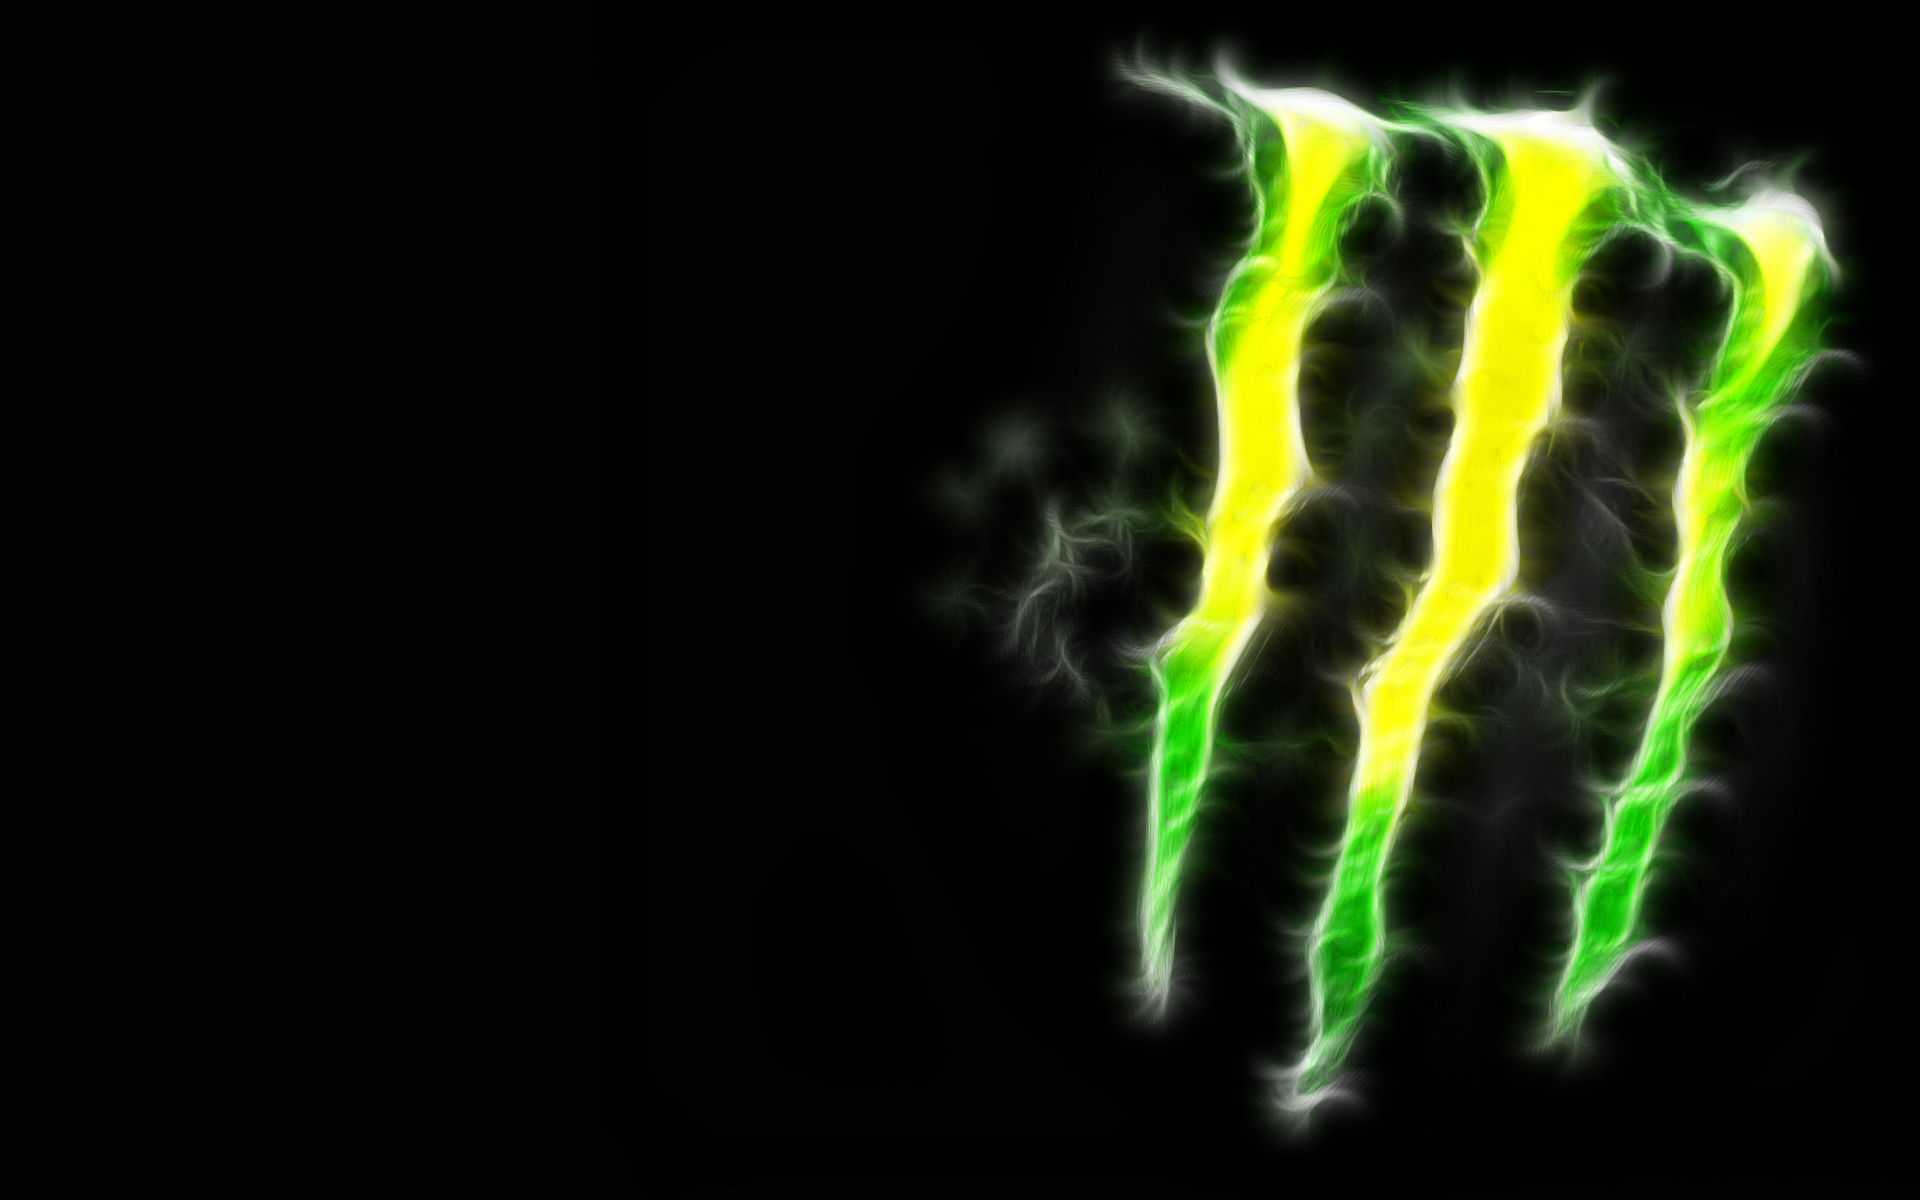 Monster Energy Wallpaper on Logos Monster Energy 2784x1848 Hd Wallpaper   Wild Animal   Reptiles